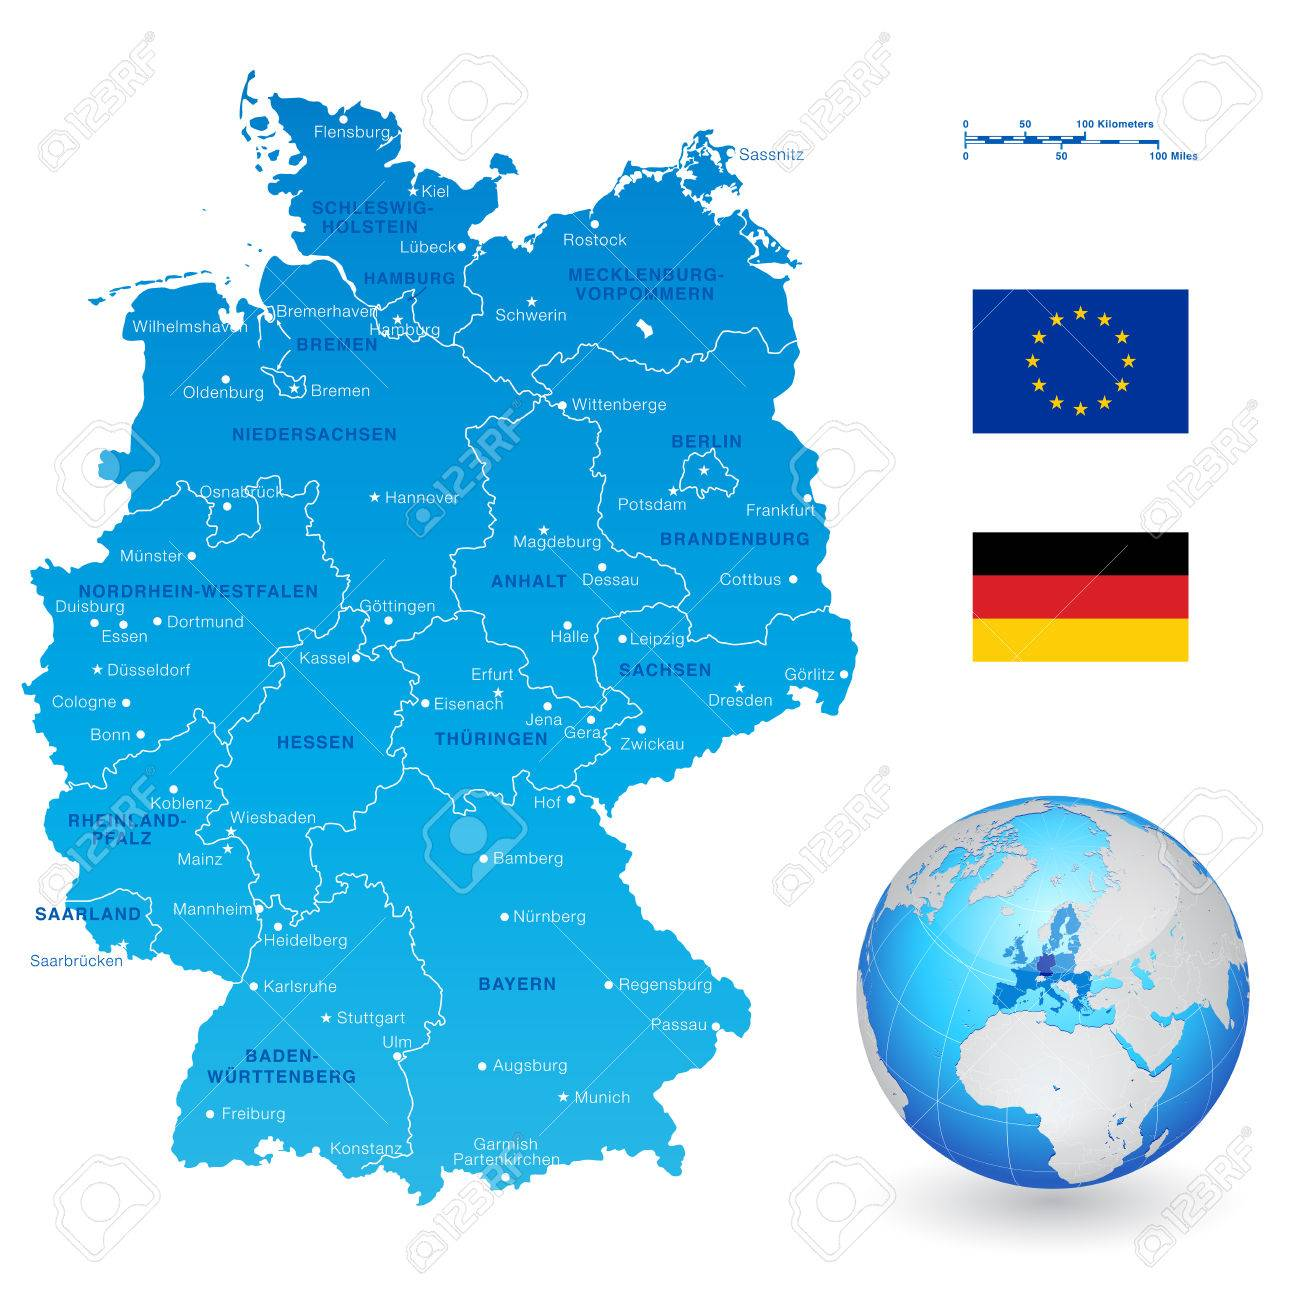 Map Of Germany With States And Cities.A High Detail Vector Map Of Germany States And Major Cities